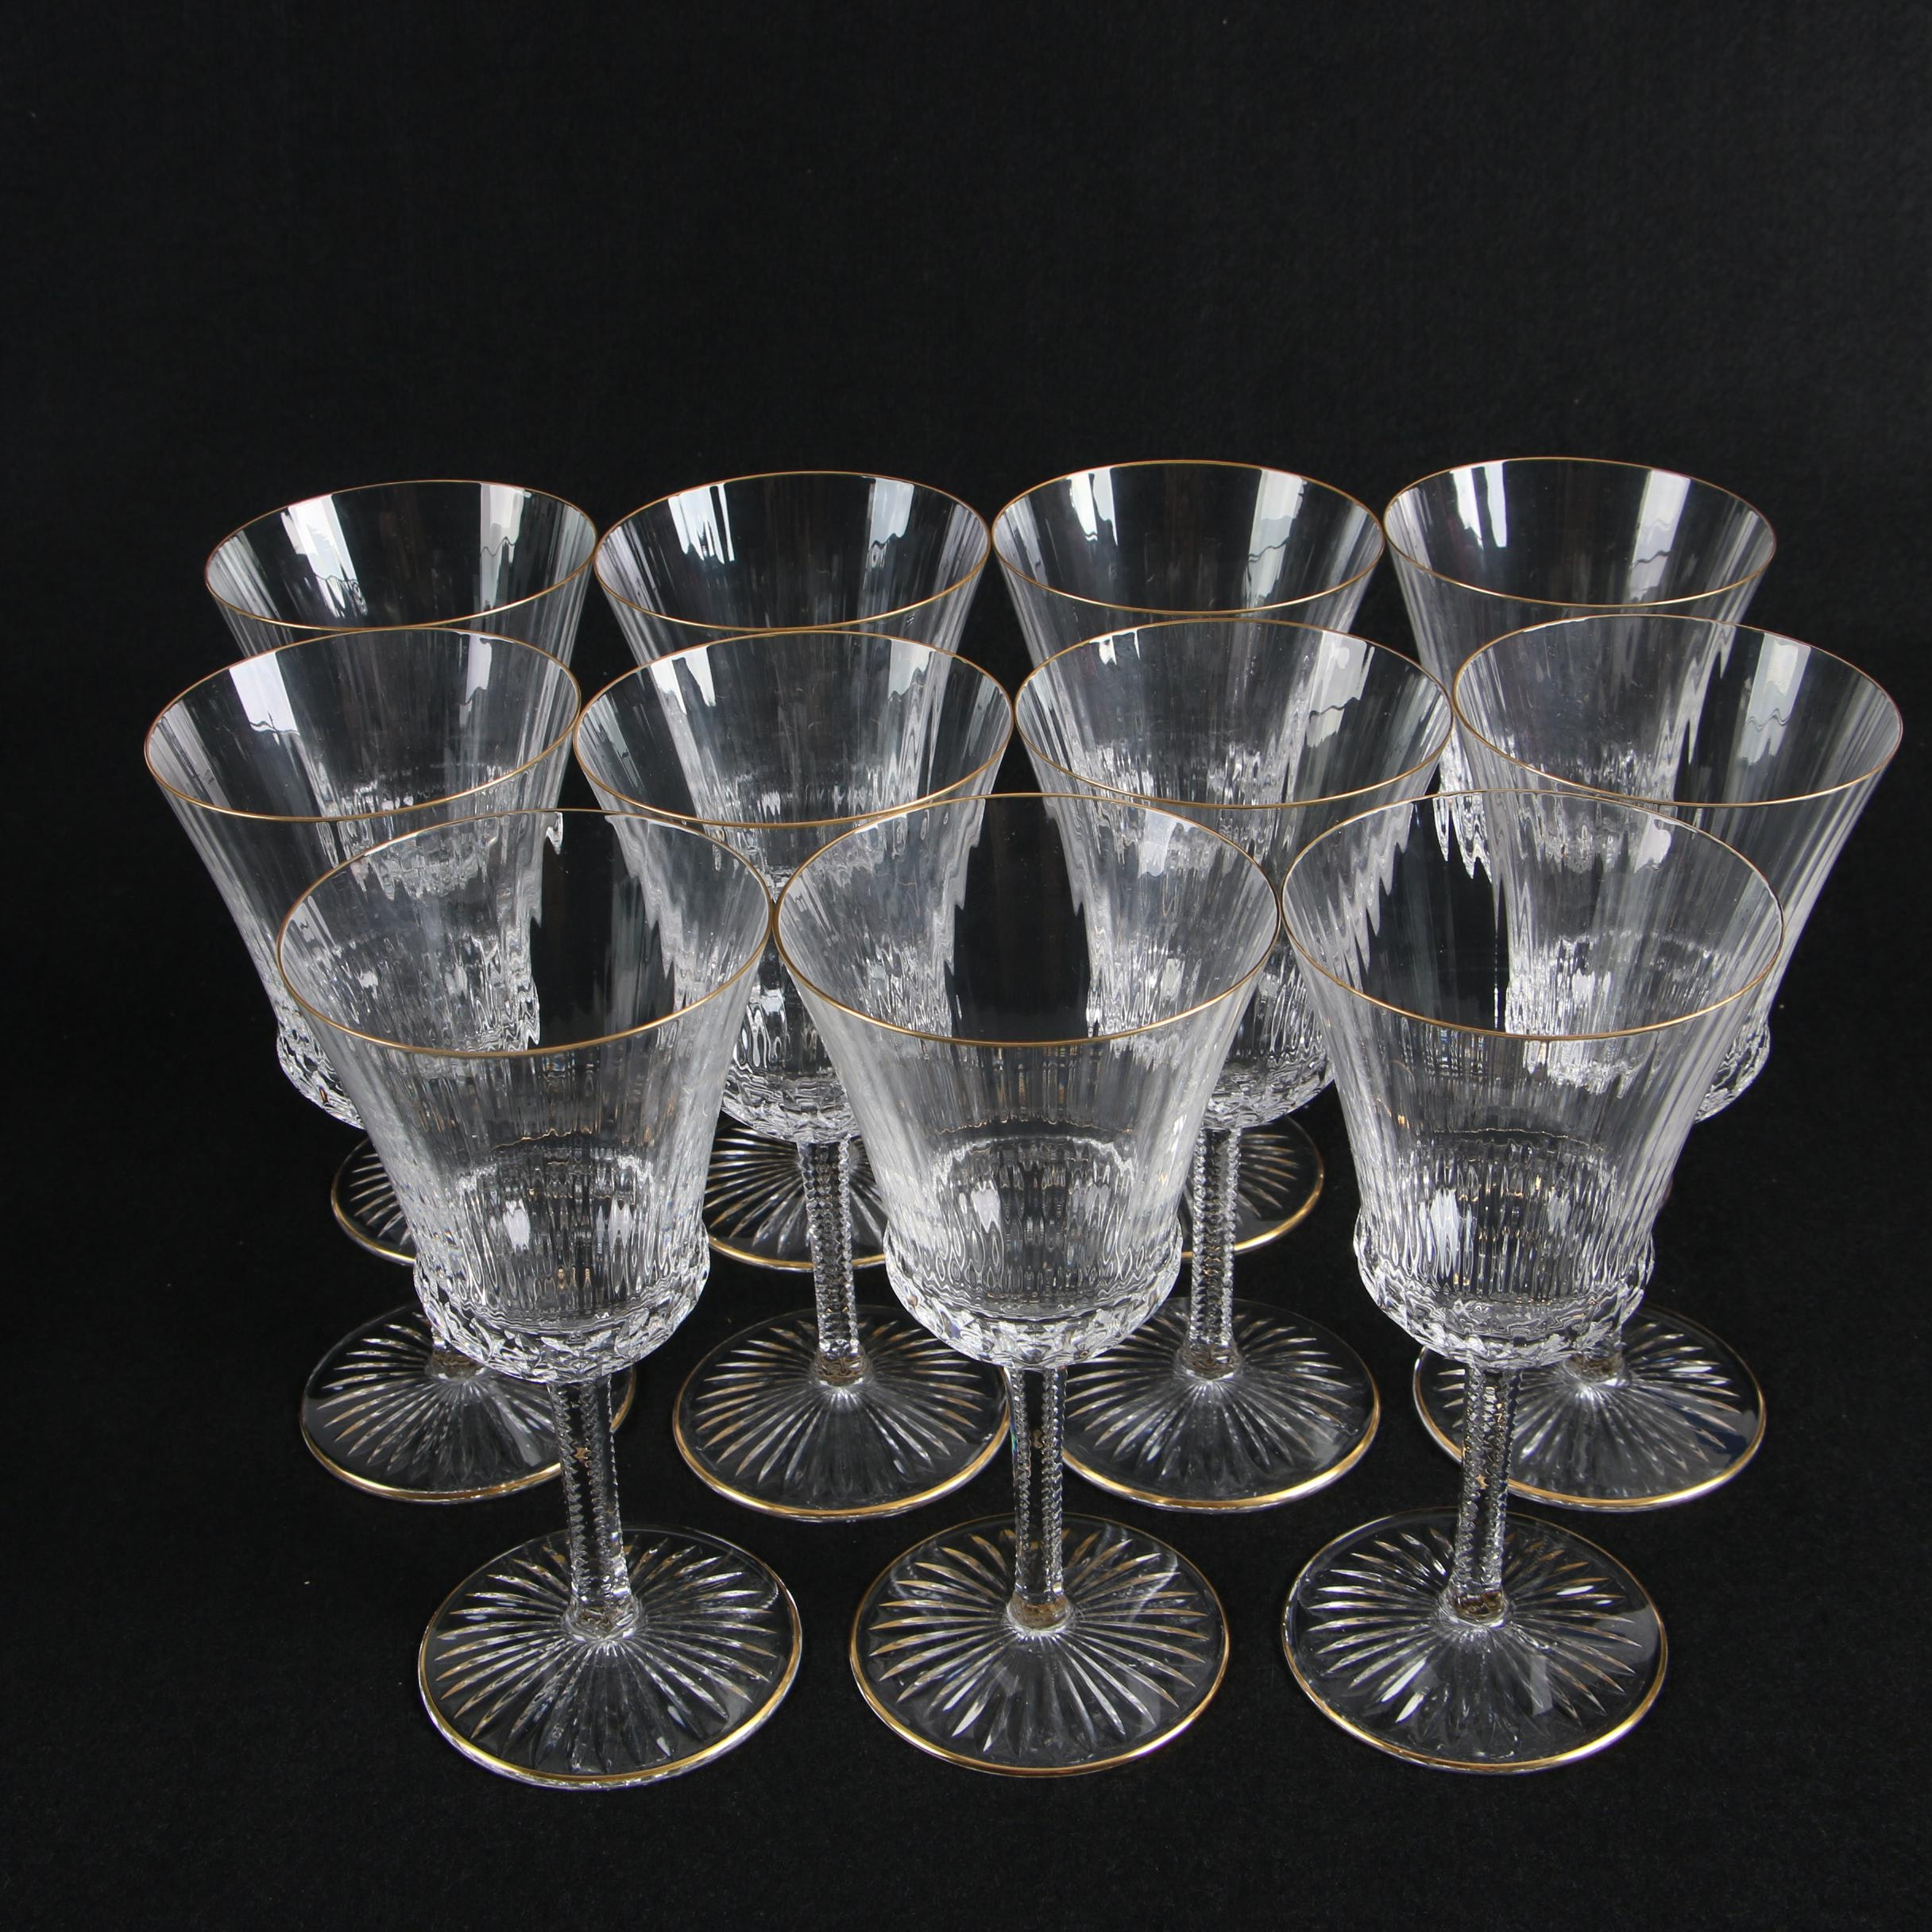 Optic Bowl Wine Glasses With Gilt Rims and Faceted Stems